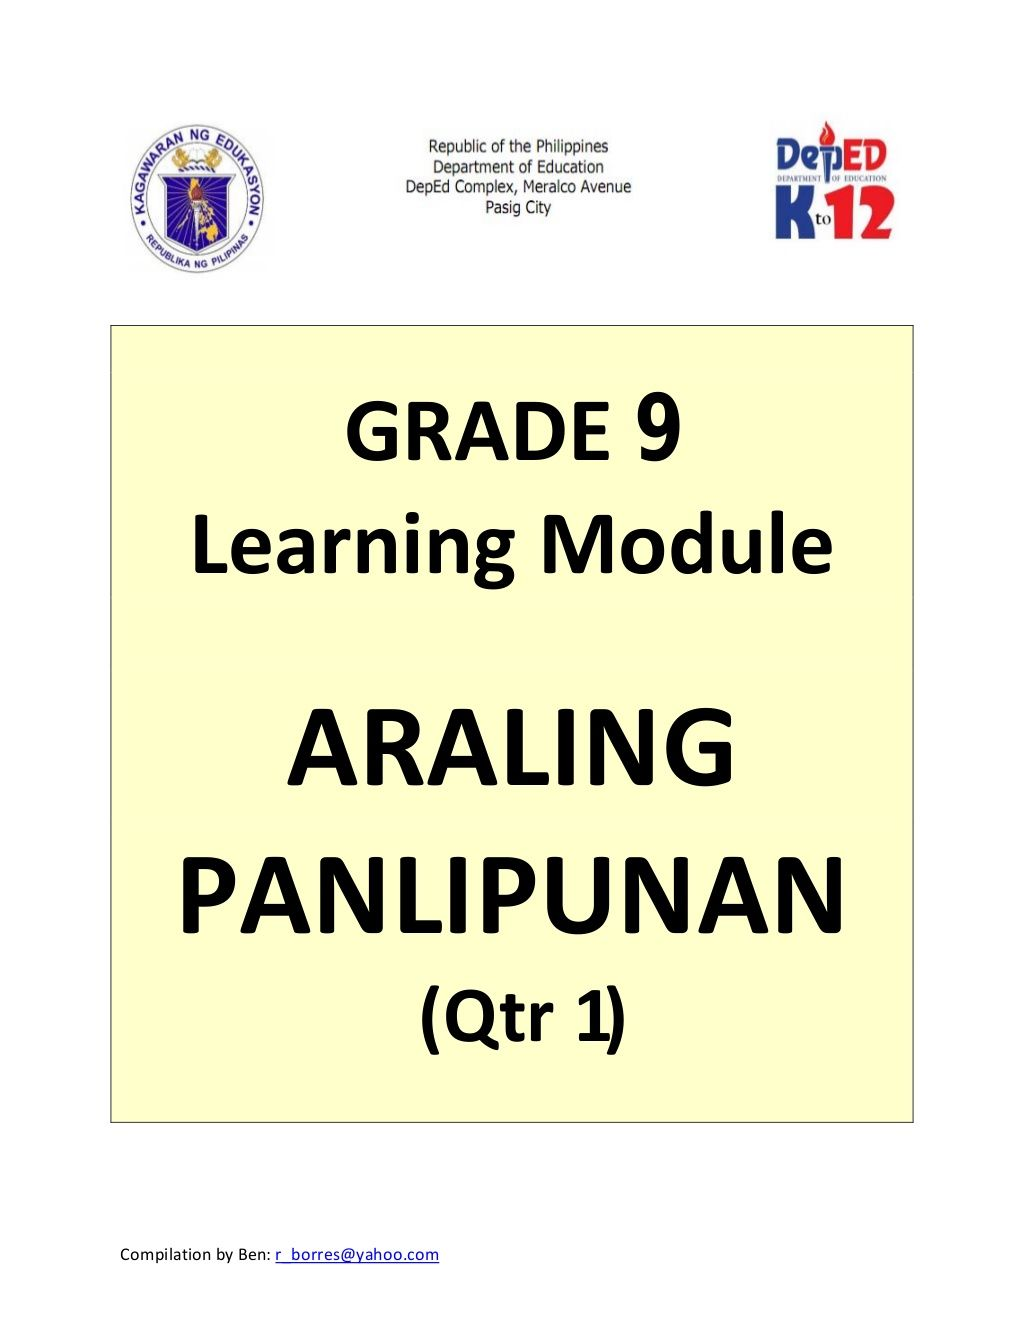 Grade 9 Learning Module In Araling Panlipunan